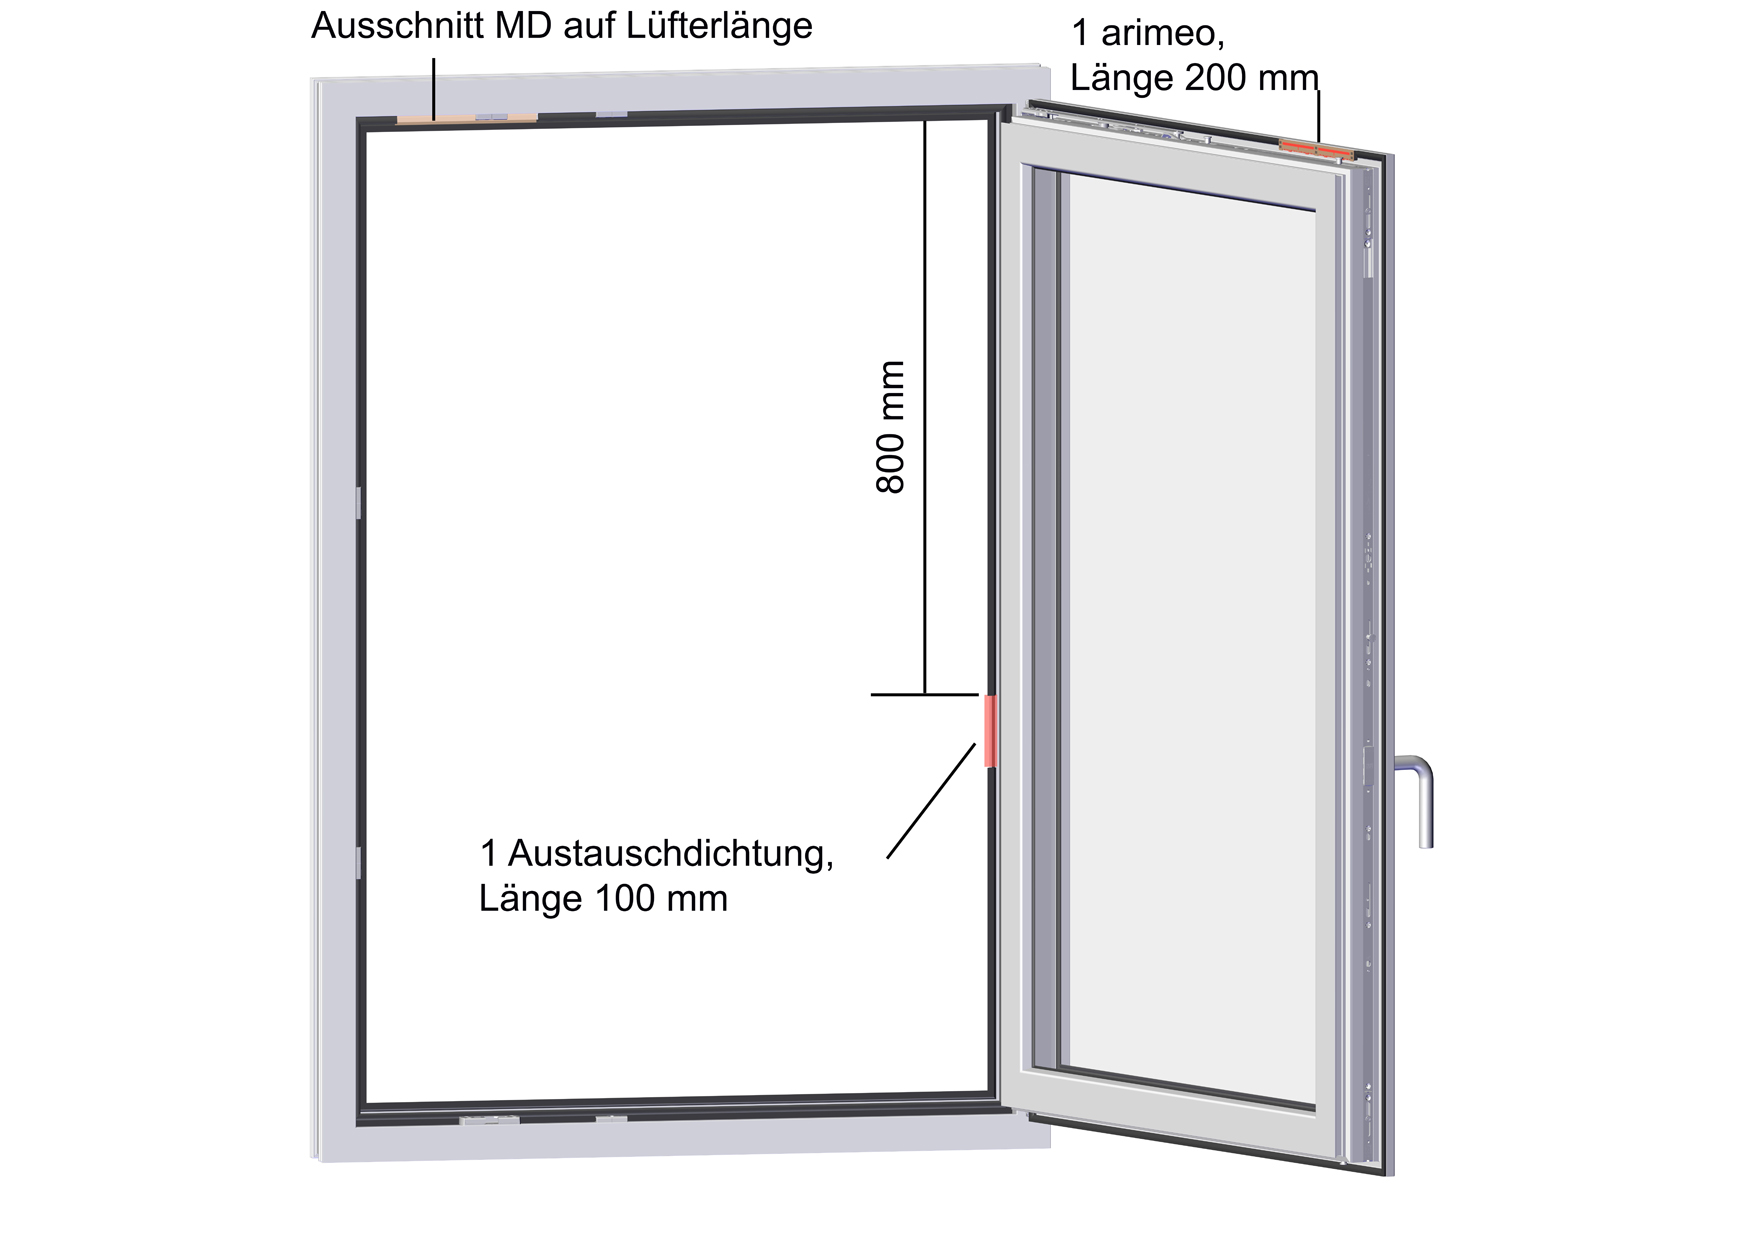 arimeo classic S Fensterfalzlüfter Einbauvariante single acoustic MD